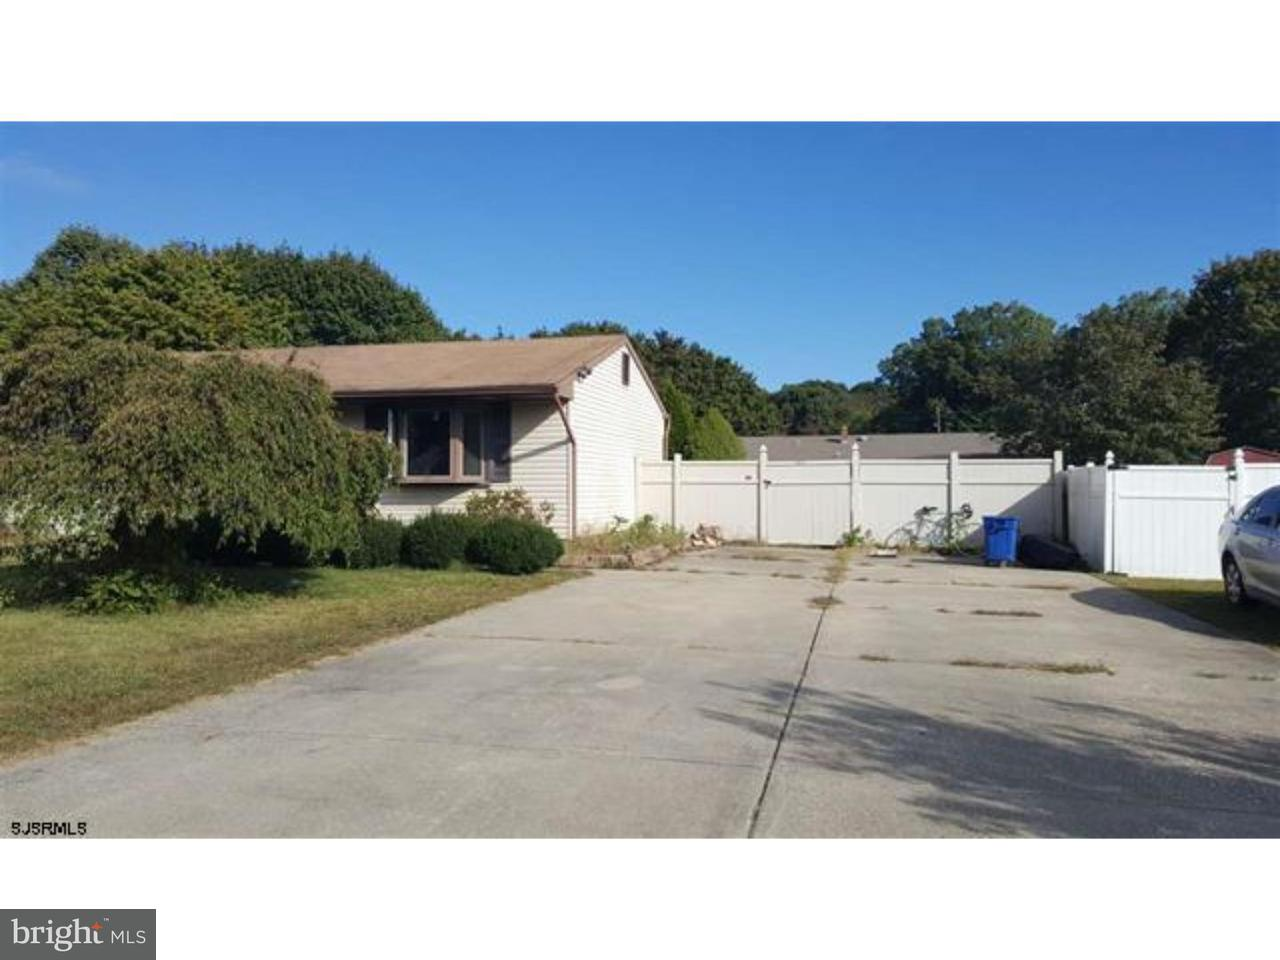 Single Family Home for Sale at 304 E PACIFIC Avenue Minotola, New Jersey 08341 United States